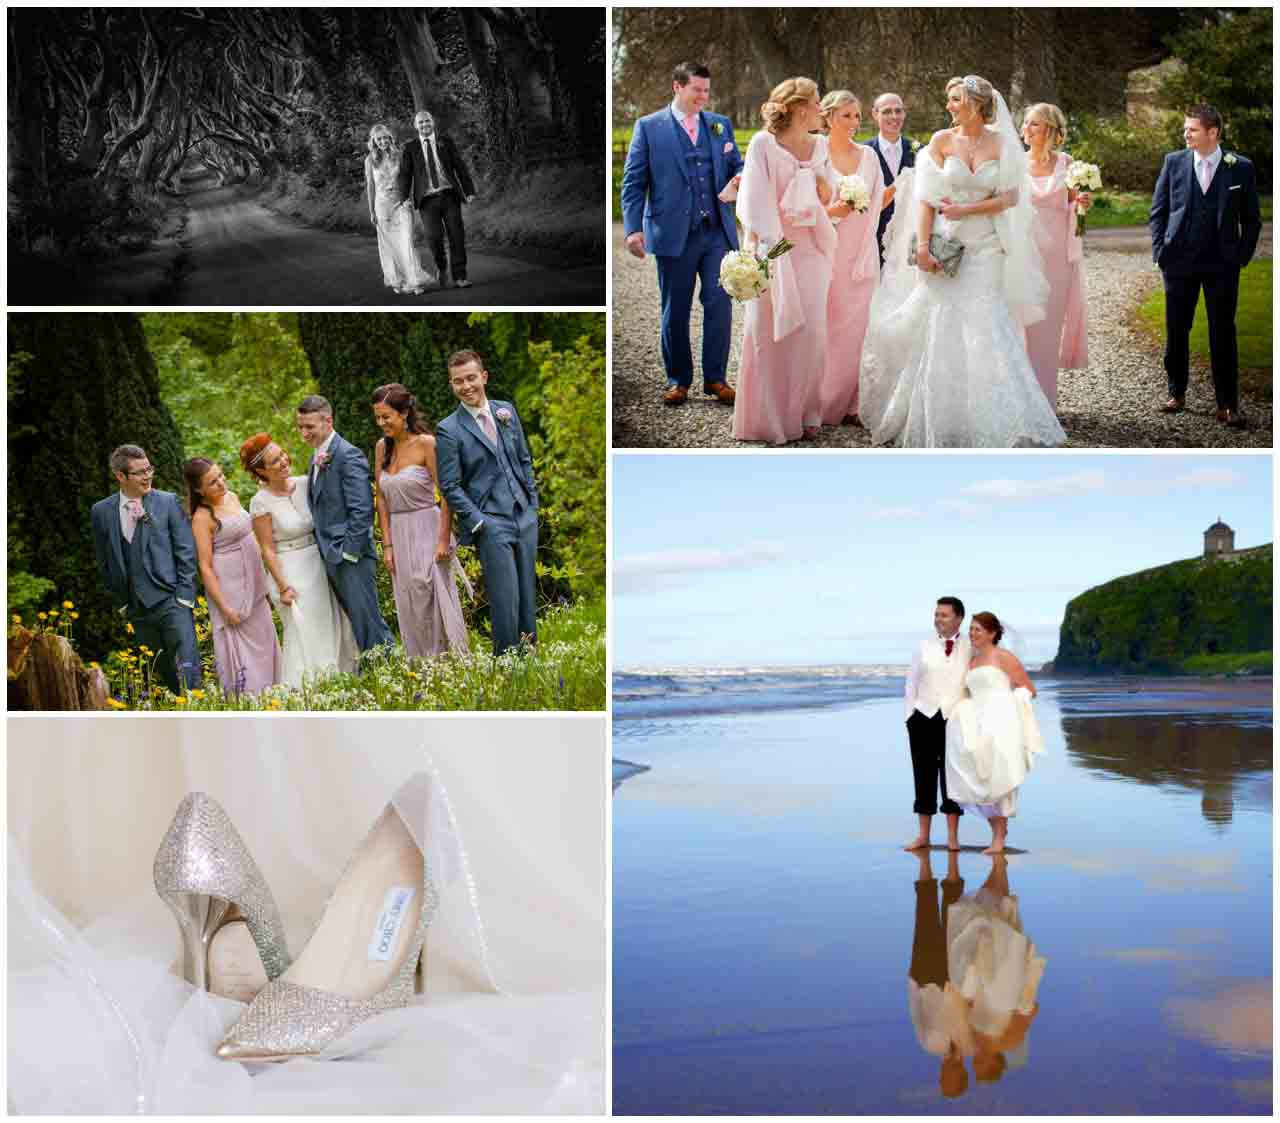 wedding photo locations in northern ireland